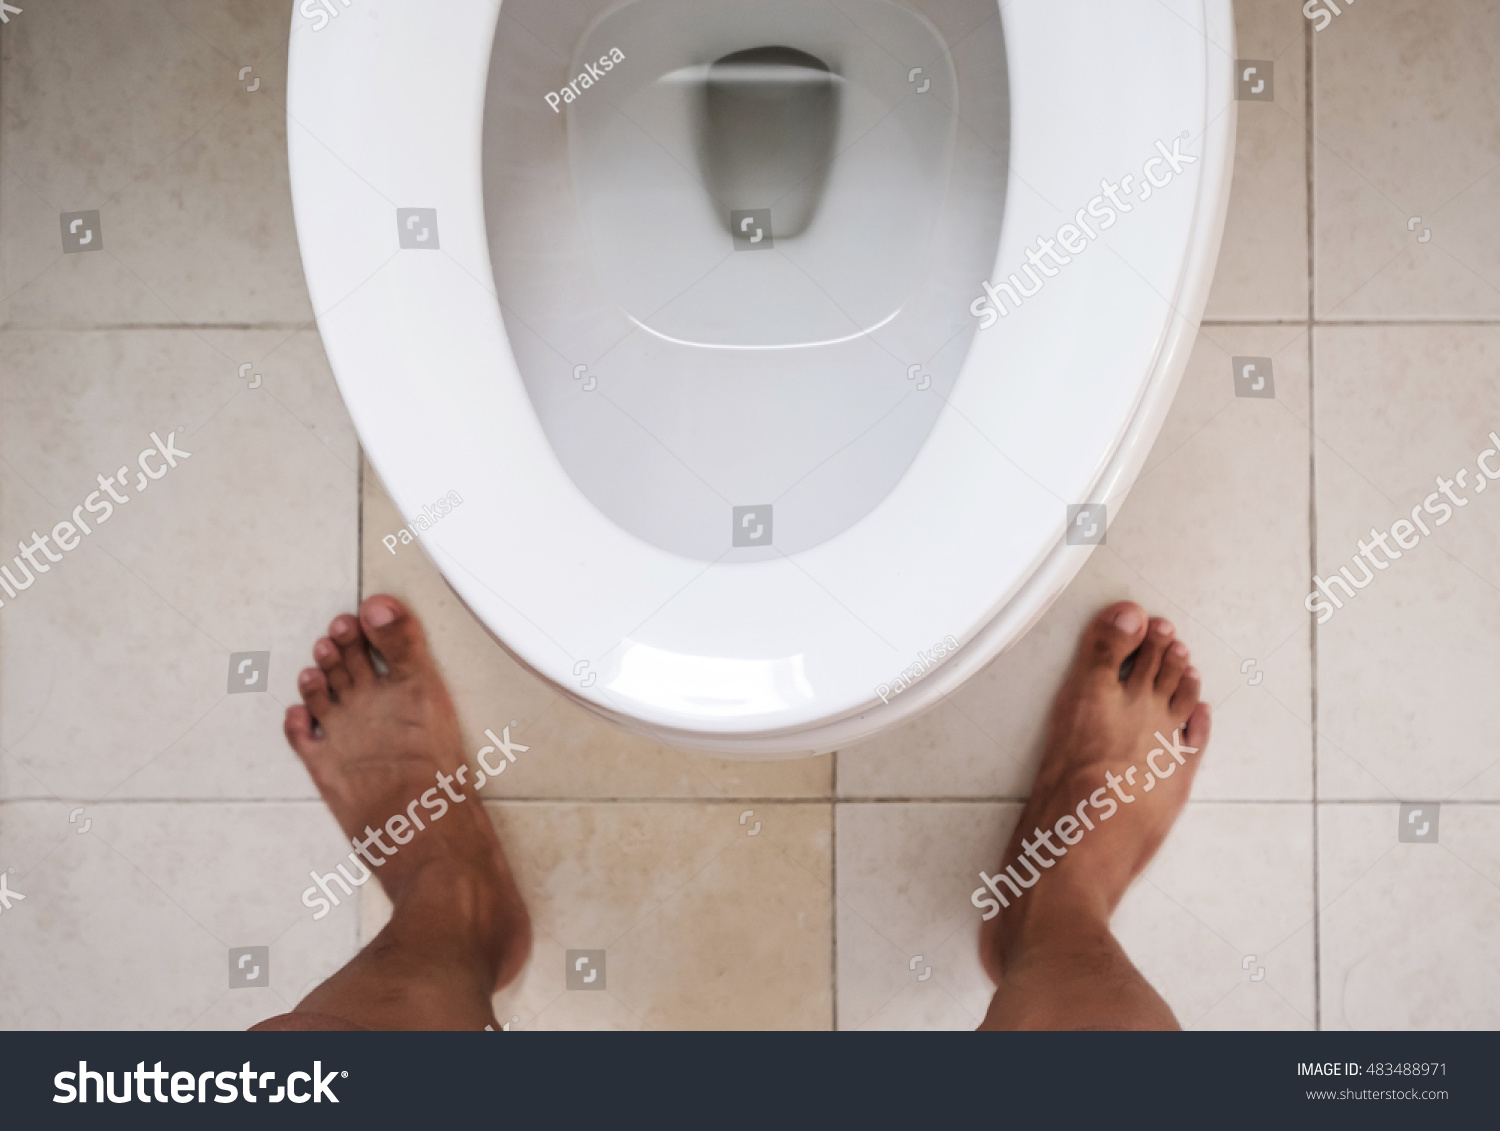 Top View Toilet Lavatory Bare Feet Stock Photo (Edit Now) 483488971 ...